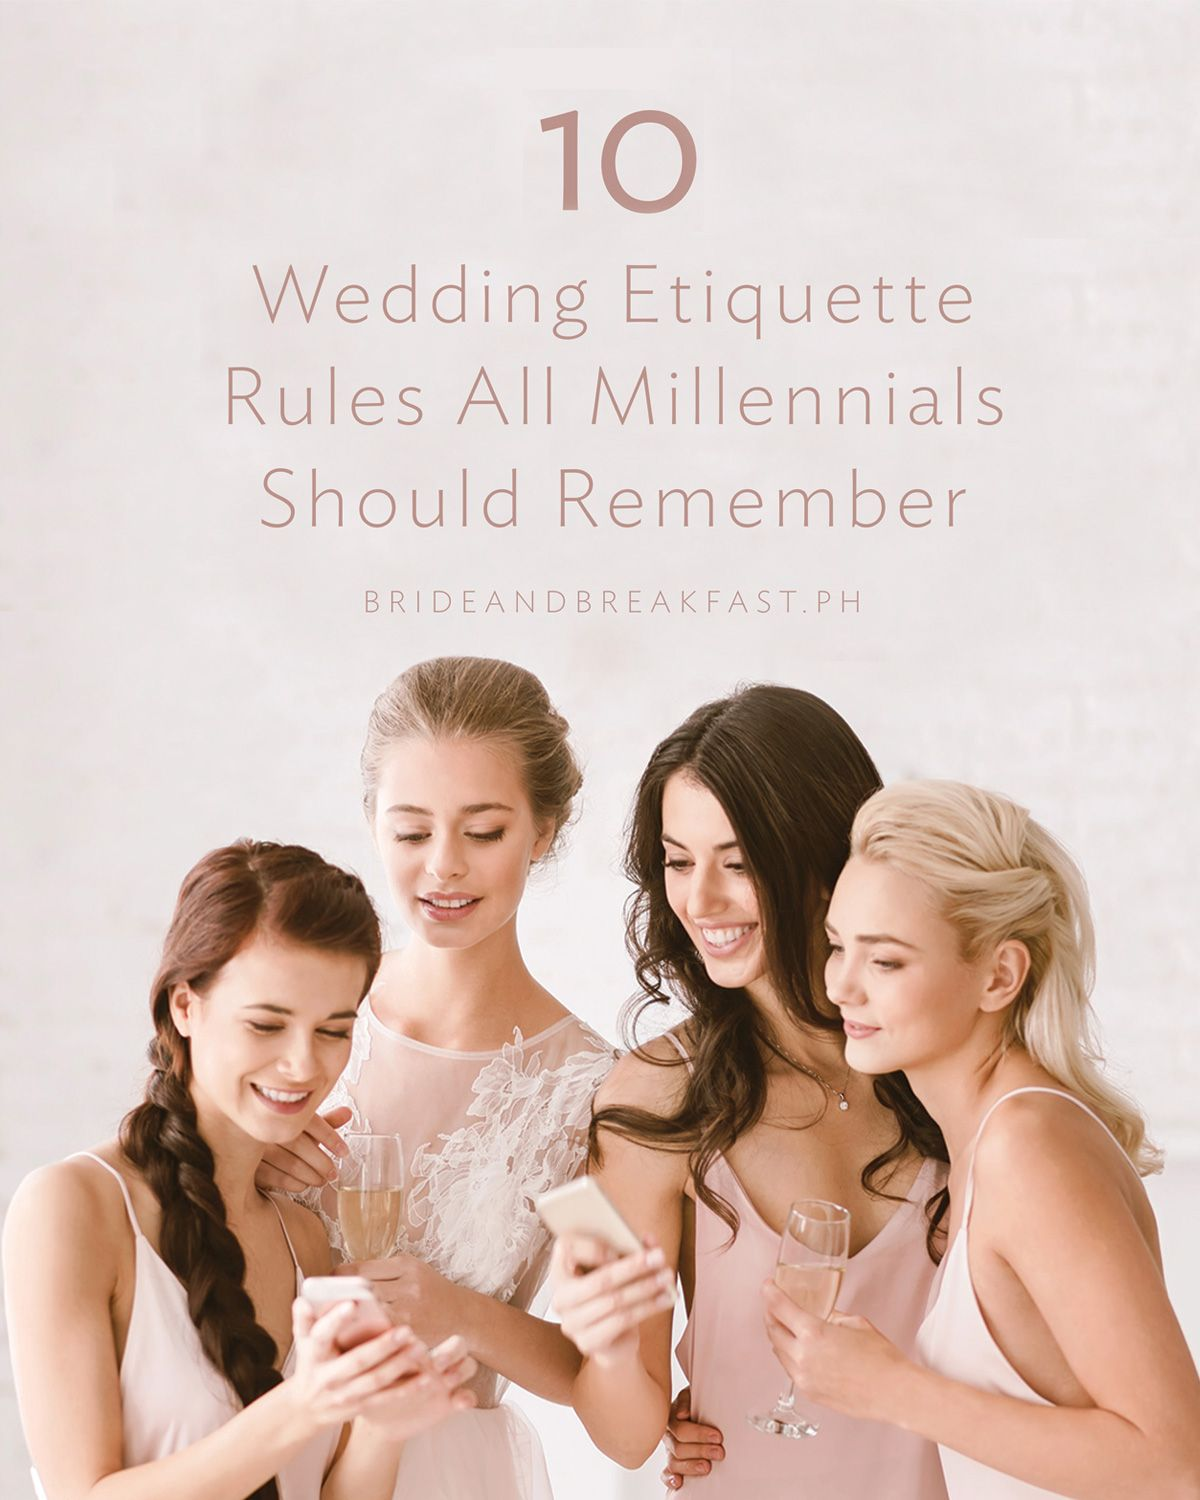 10 Wedding Etiquette Rules All Millennials Should Remember